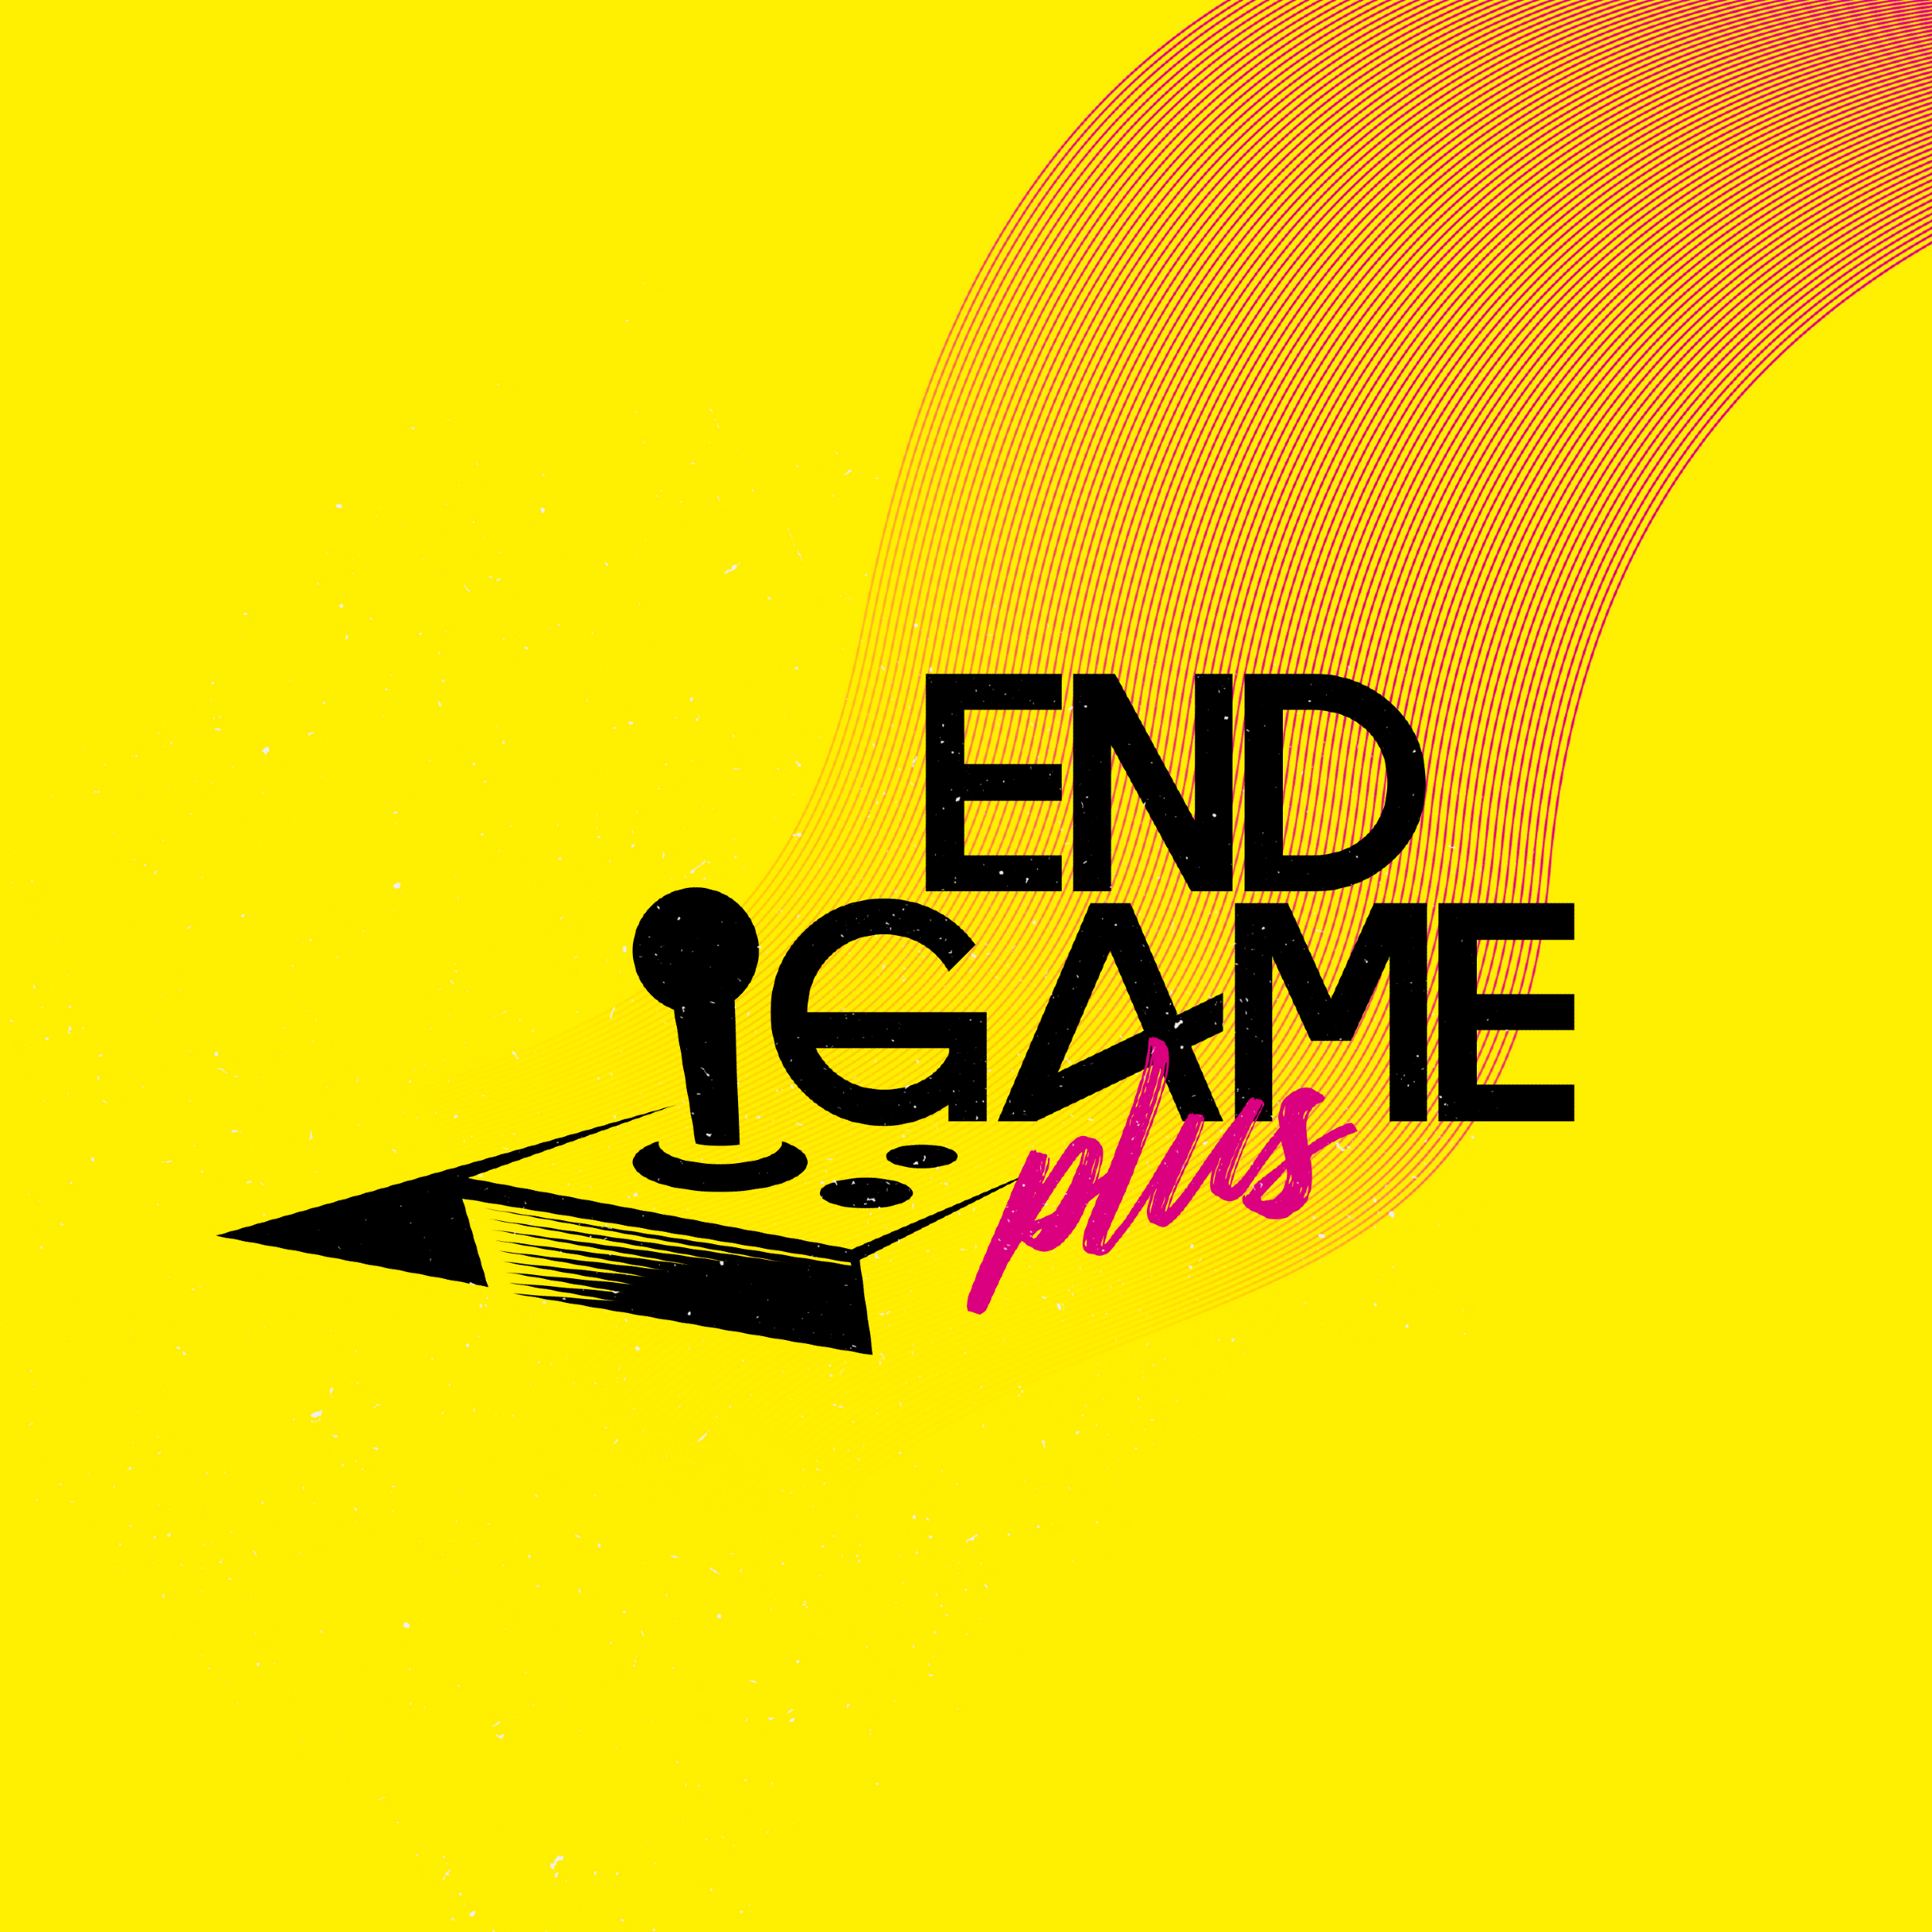 End Game Plus